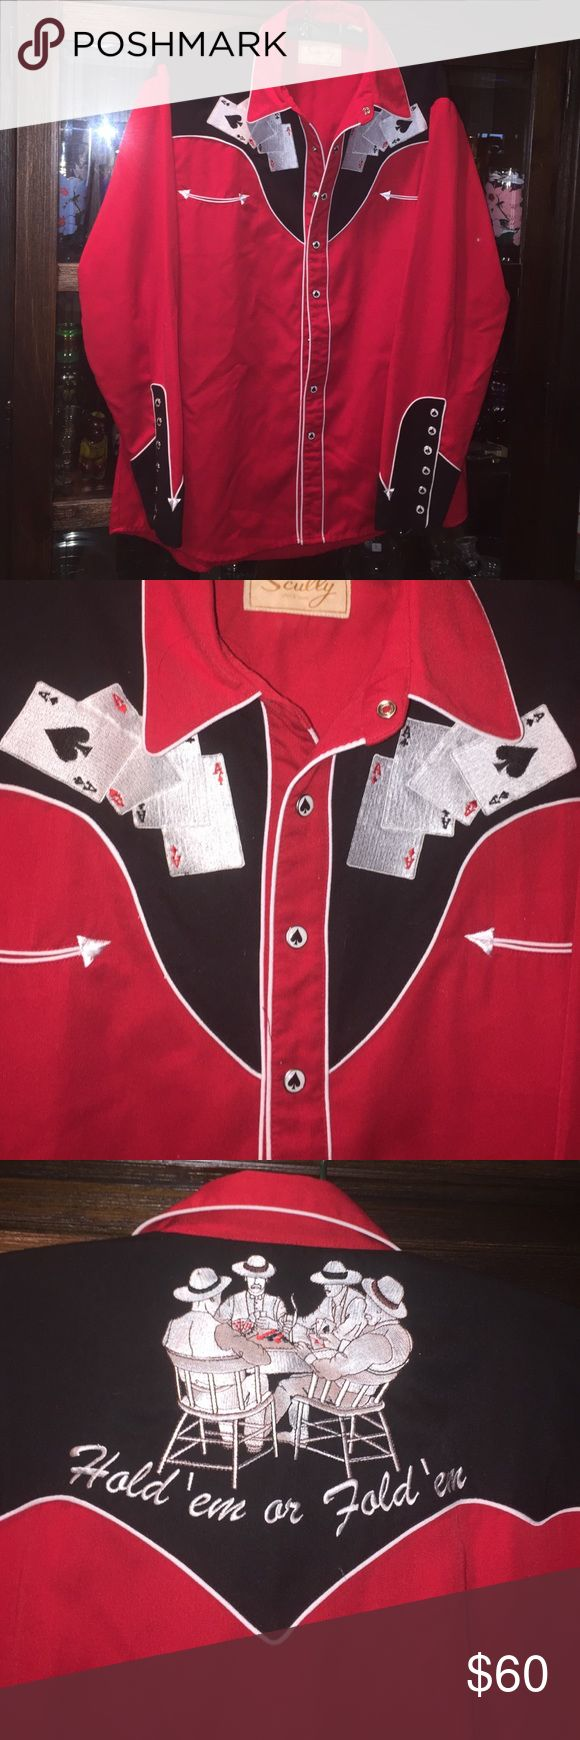 SCULLY Authentic western shirt🏌️♀️♠️ SCULLY authentic Western shirt perfect size medium with spades ♠️ on the buttons cooll♠️we have 3 Western shirts up take a look SCULLY Shirts Casual Button Down Shirts